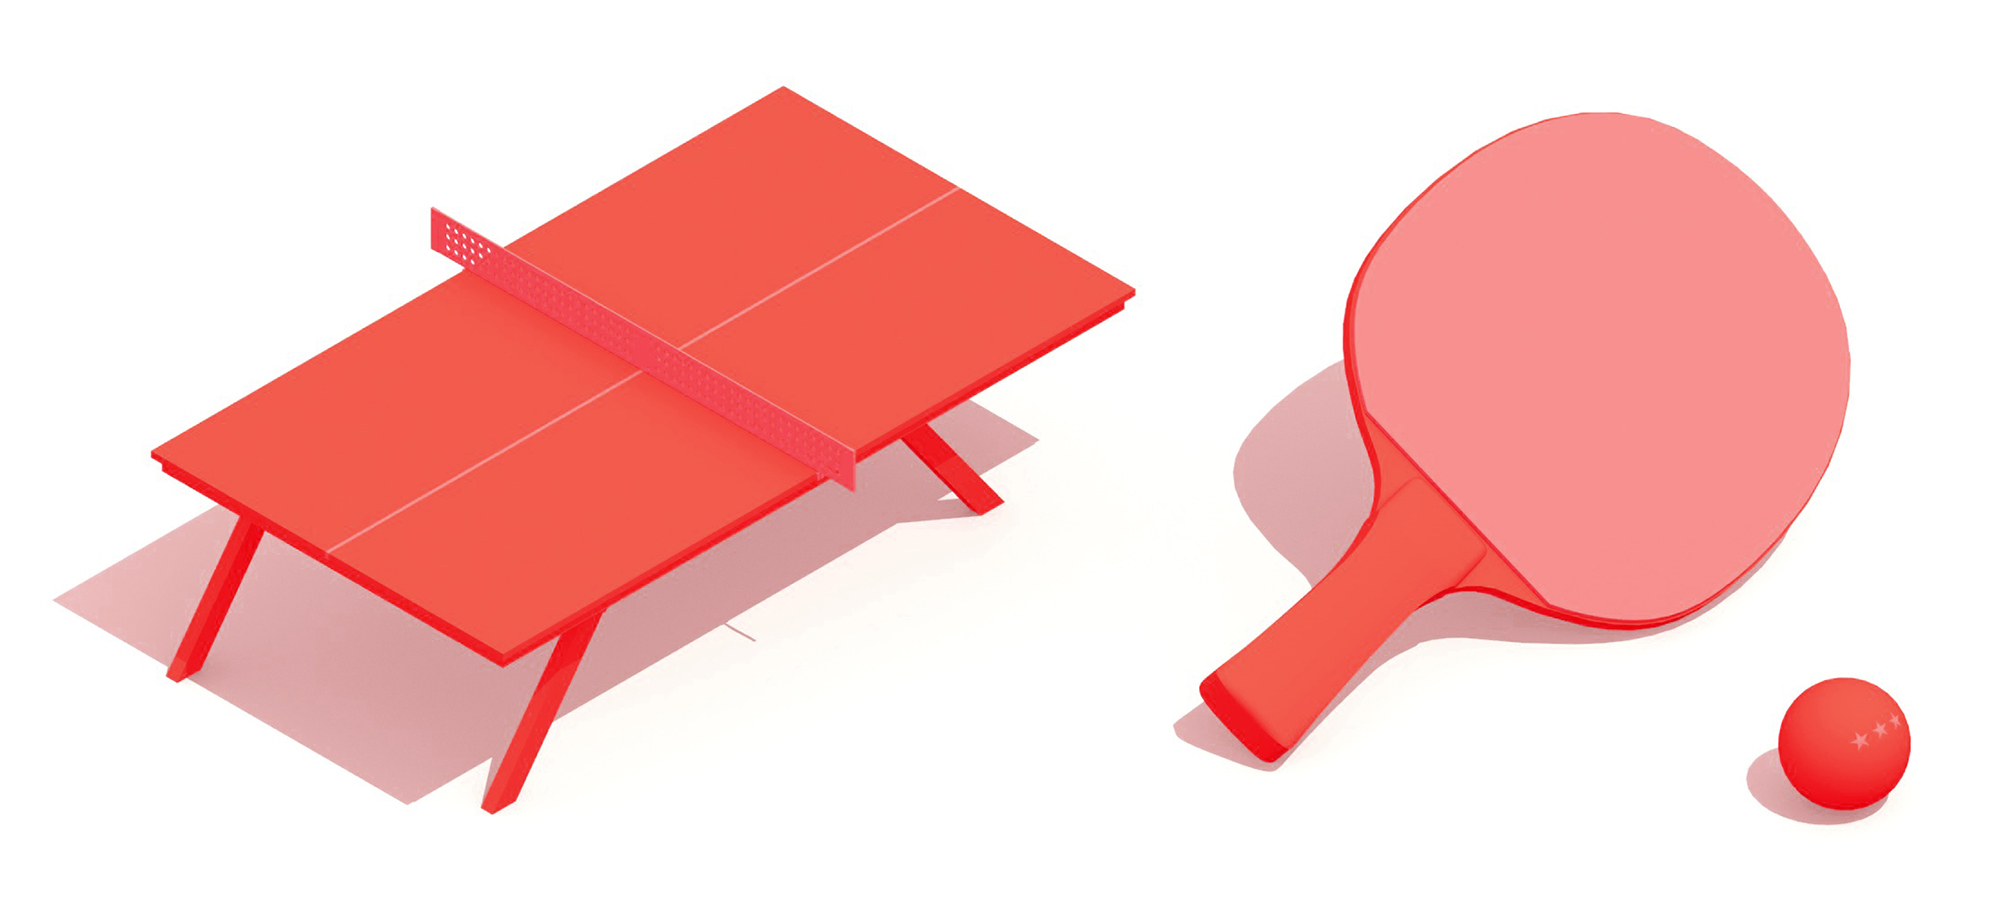 Group of 3D models of Table Tennis (Ping-Pong) equipment including a table tennis table, paddle, and ping-pong ball